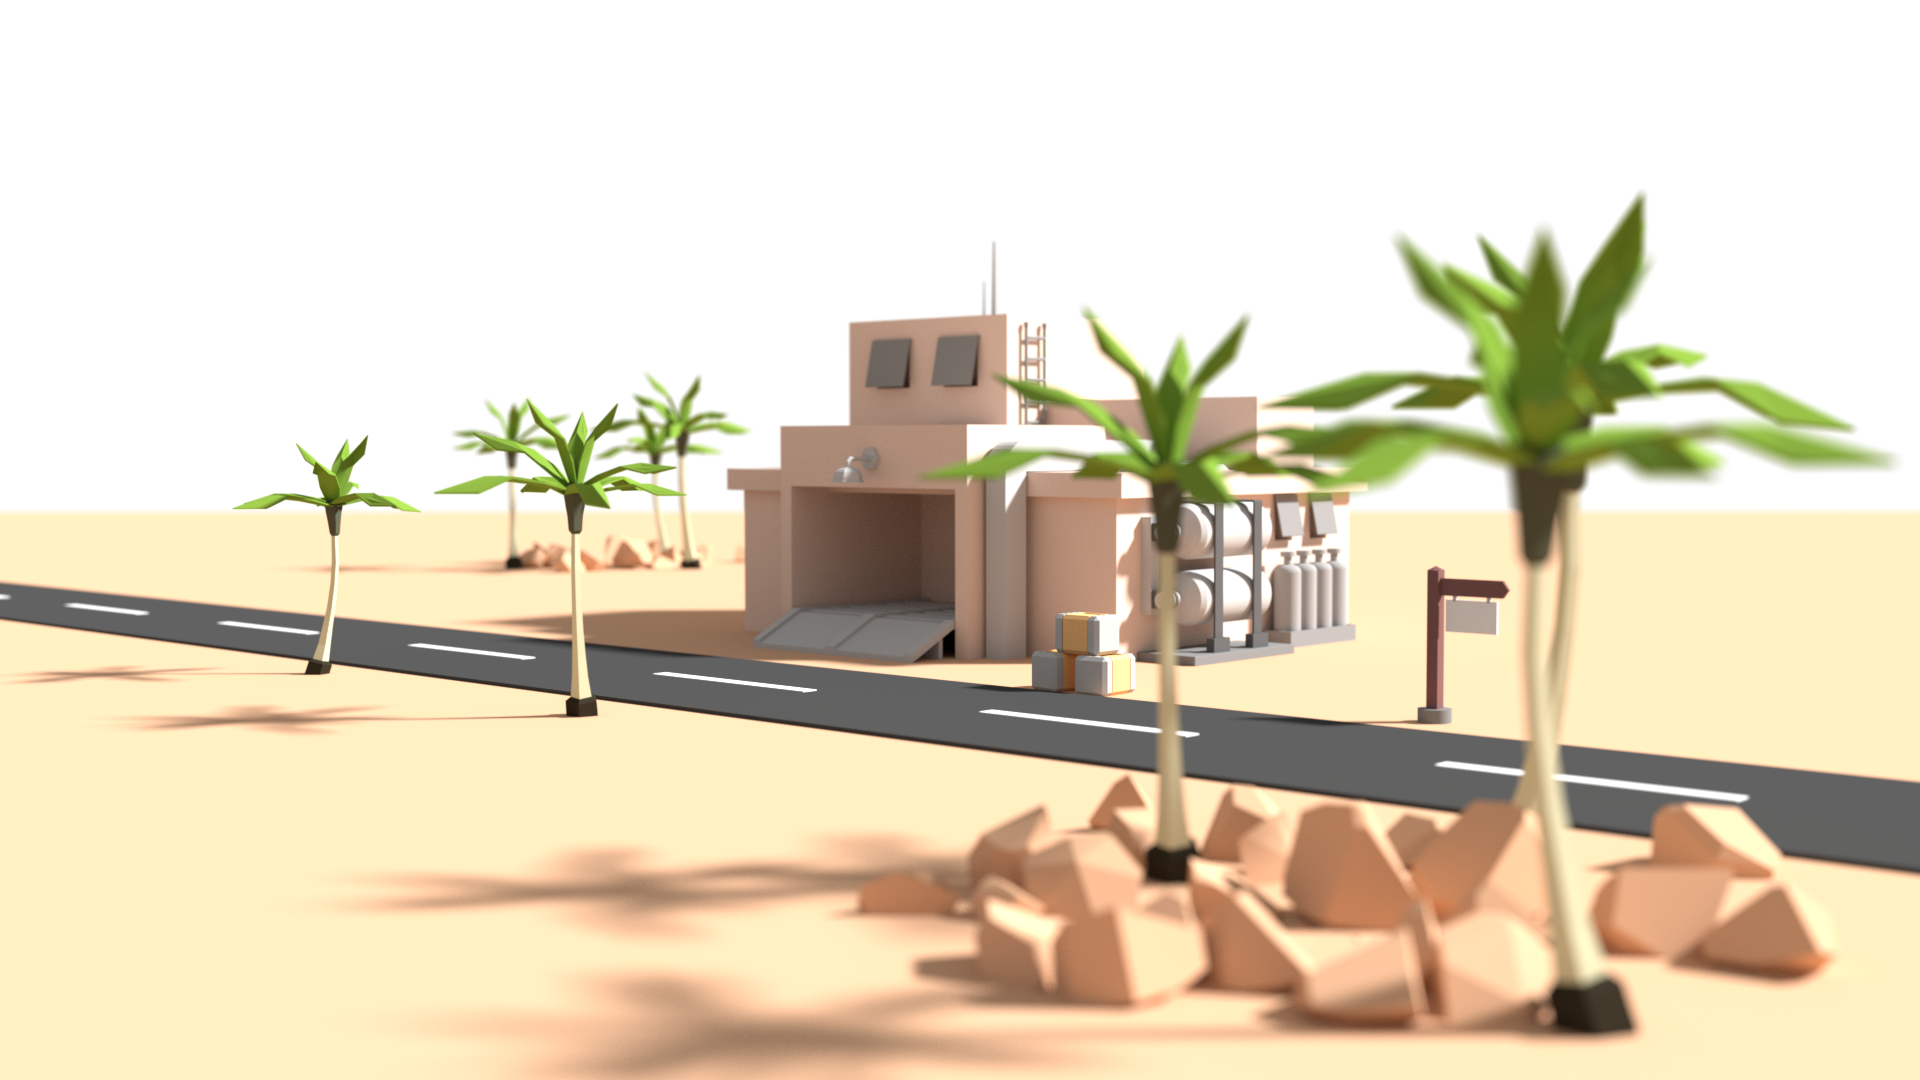 Low poly desert outpost